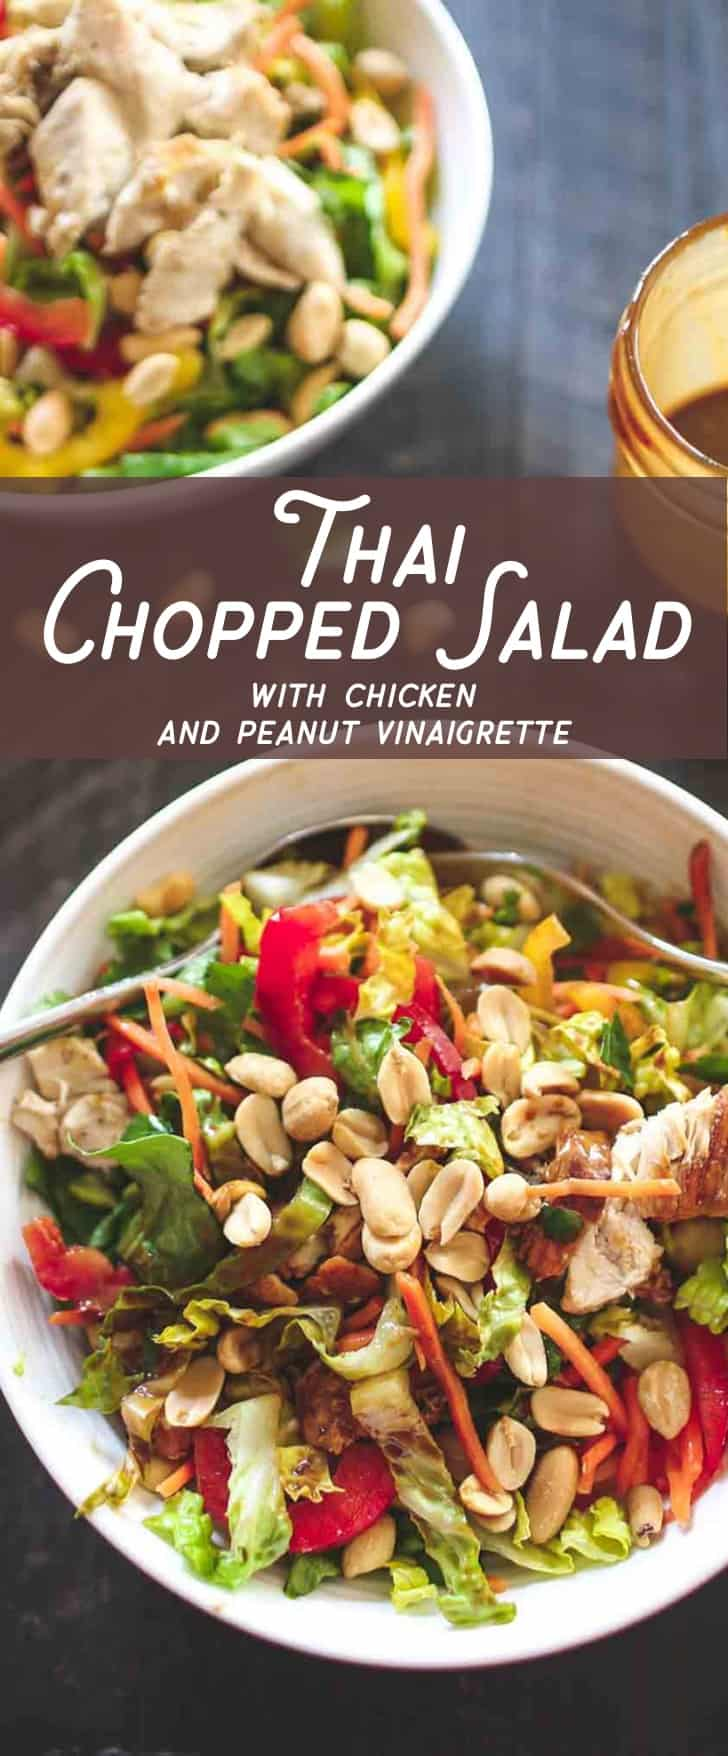 Thai Chopped Chicken Salad- With a rainbow of crunch from peppers and peanuts, protein from tender shredded chicken, and a bit of sweet spice from peanut dressing, this salad is gluten-free and only 350 calories per serving.